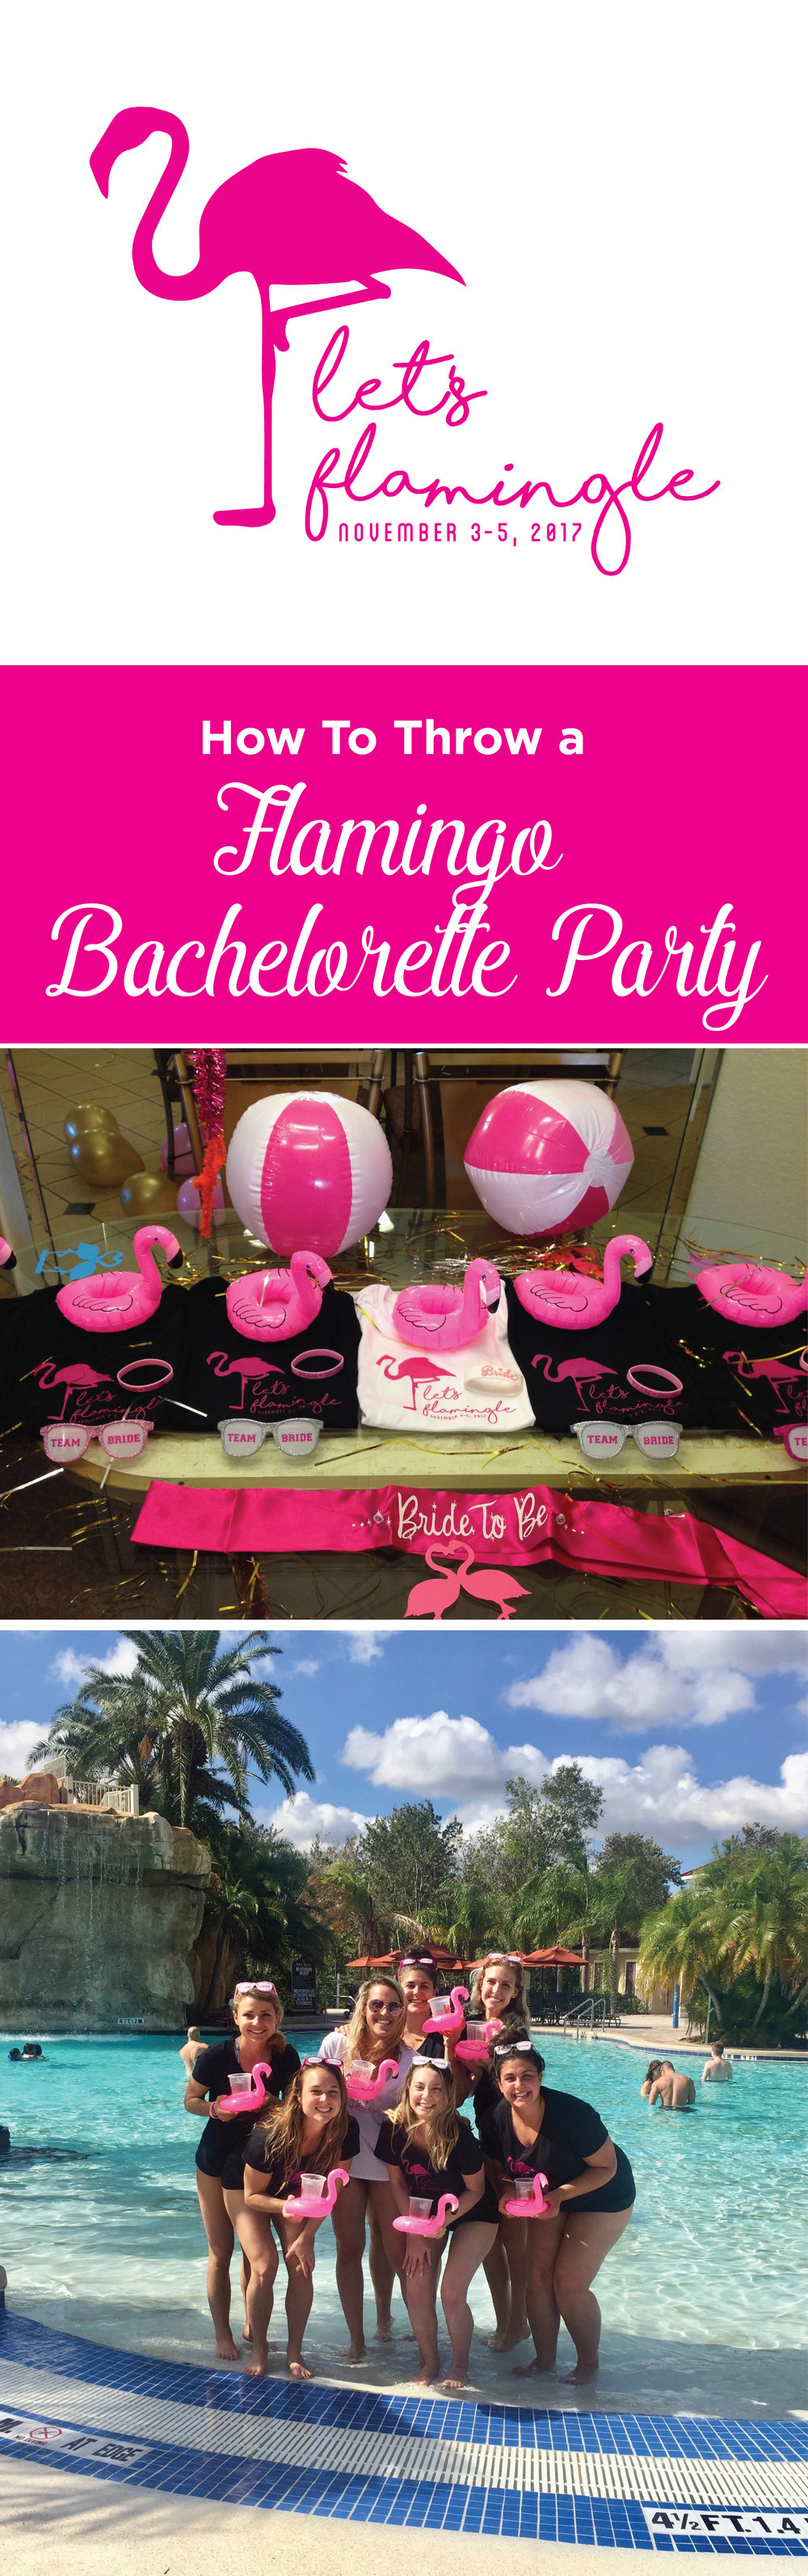 Let's Flamingle! A Flamingo Themed Bachelorette Party. Easy step-by-step instructions to throw the best Bachelorette ever!